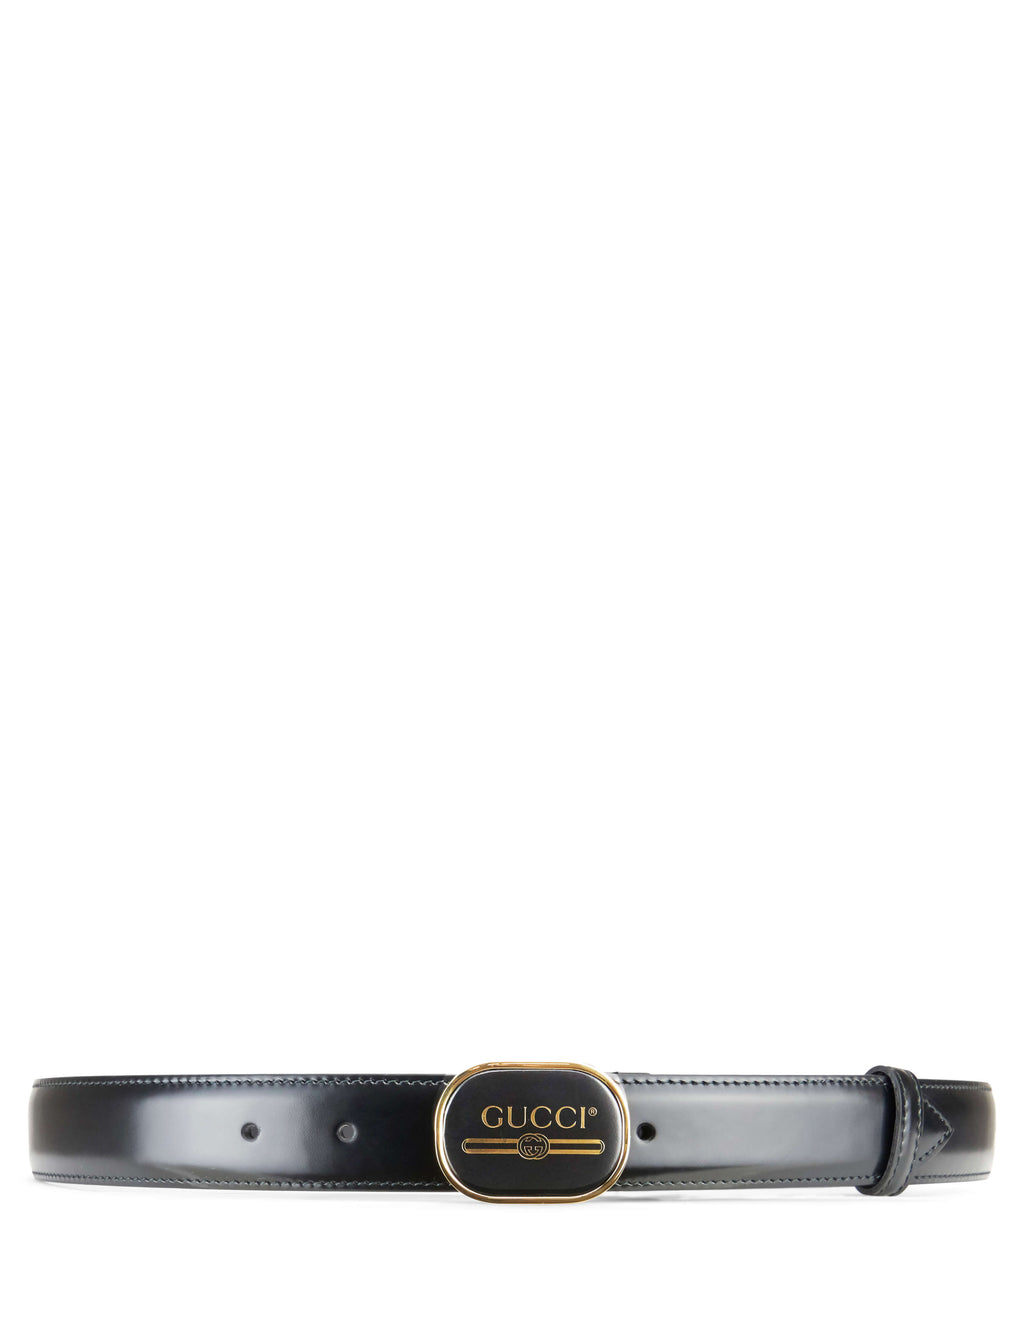 763770f4e0 Gucci Print Buckle Belt - 75